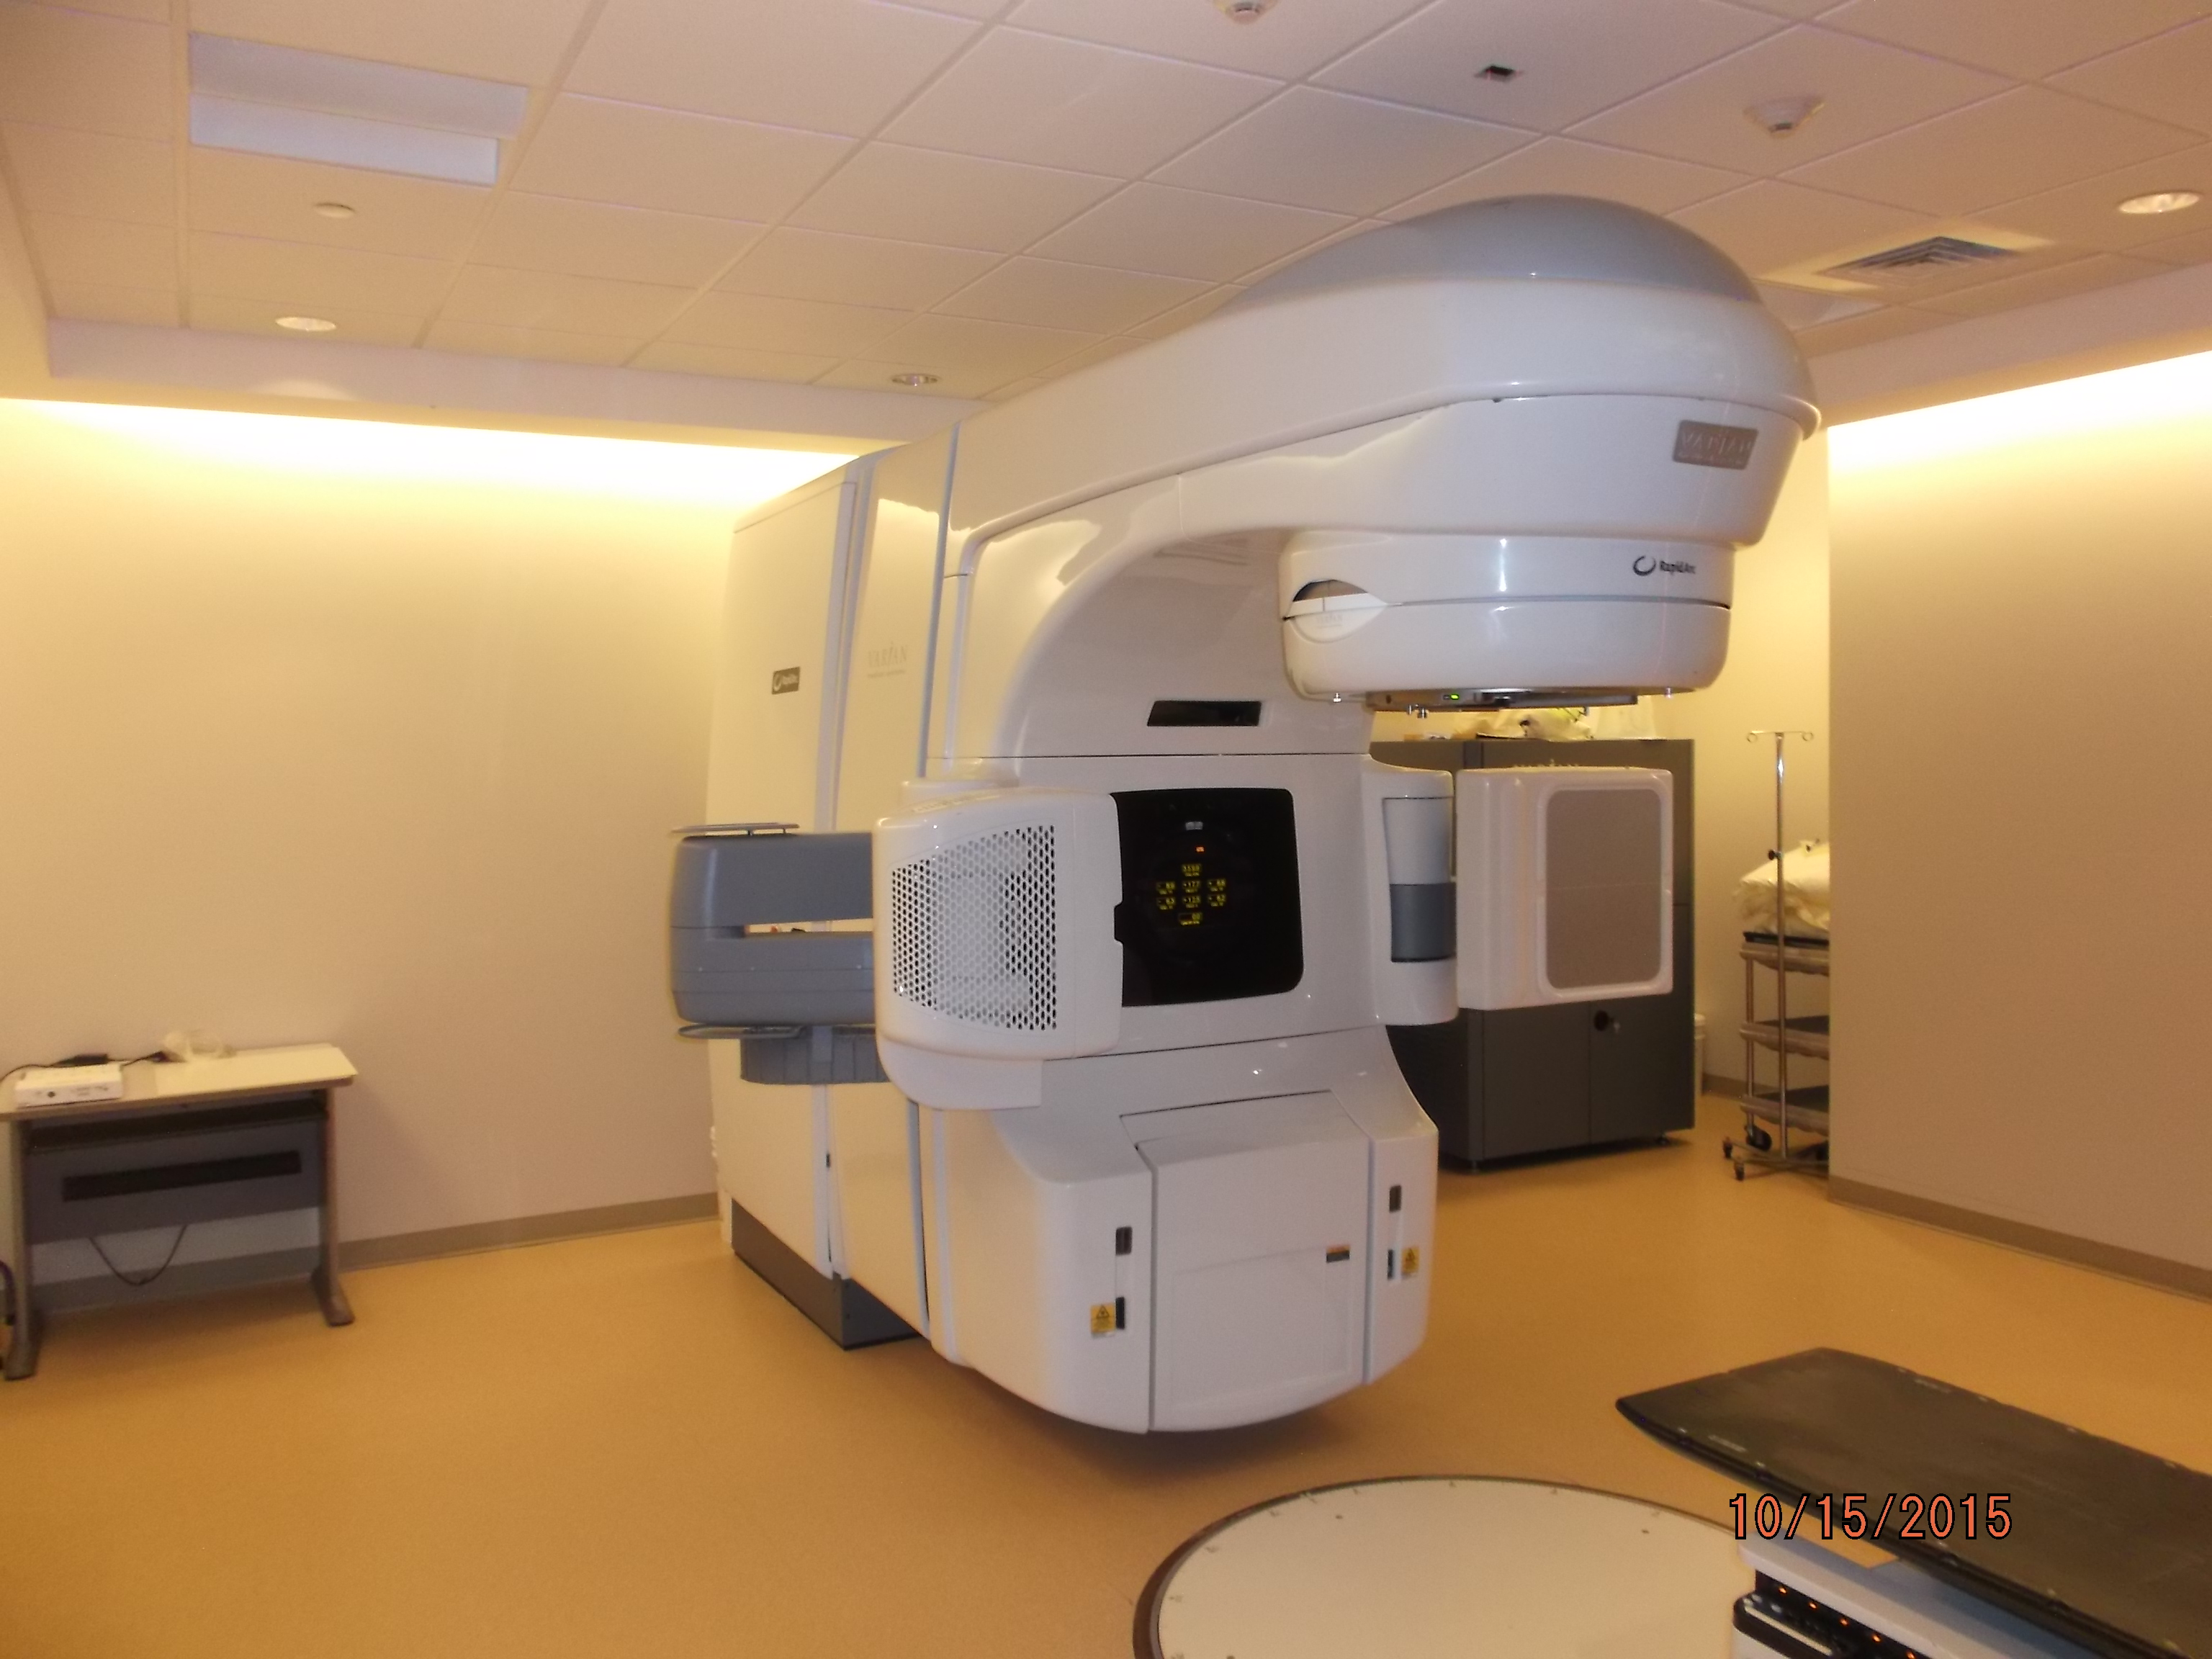 Northern Indiana Oncology Center image 2